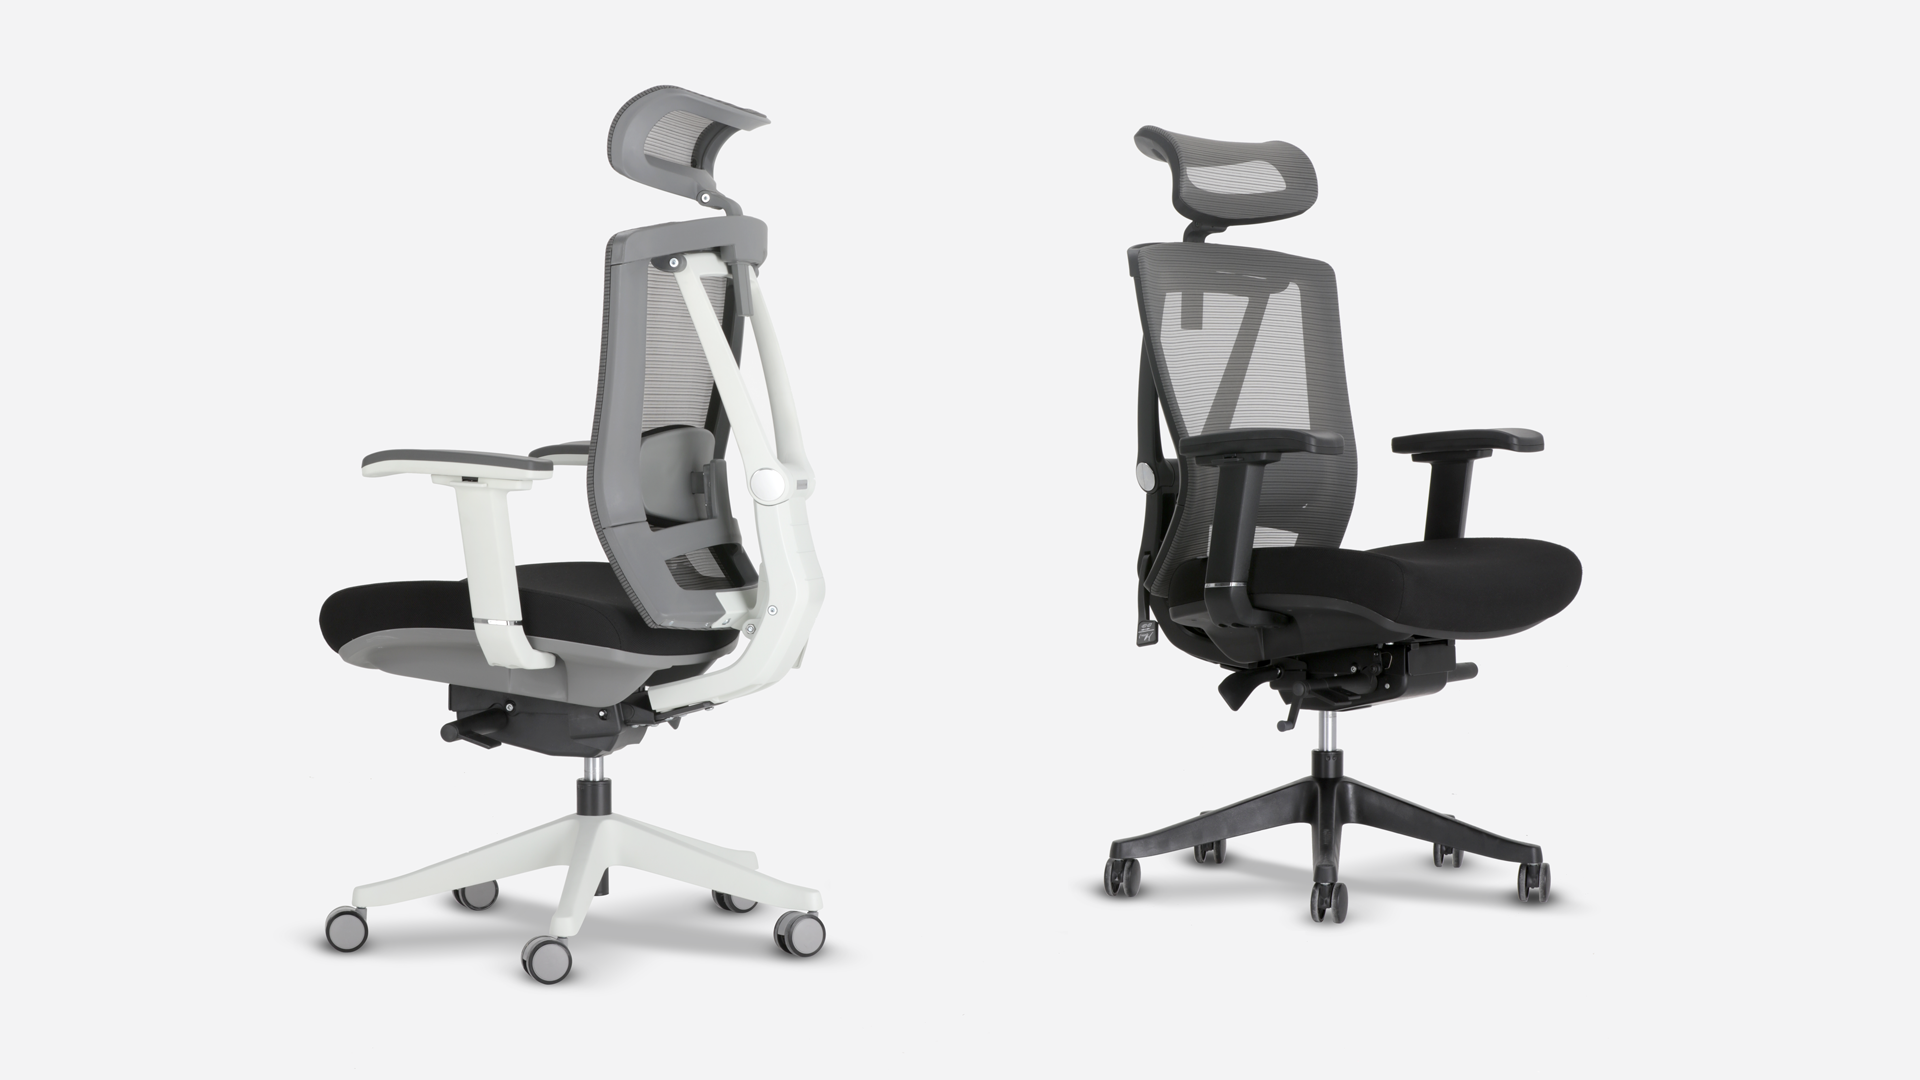 Best Office Chair For Lower Back Pain That Will Blow Your Mind - ErgoChair 2 - Black & White